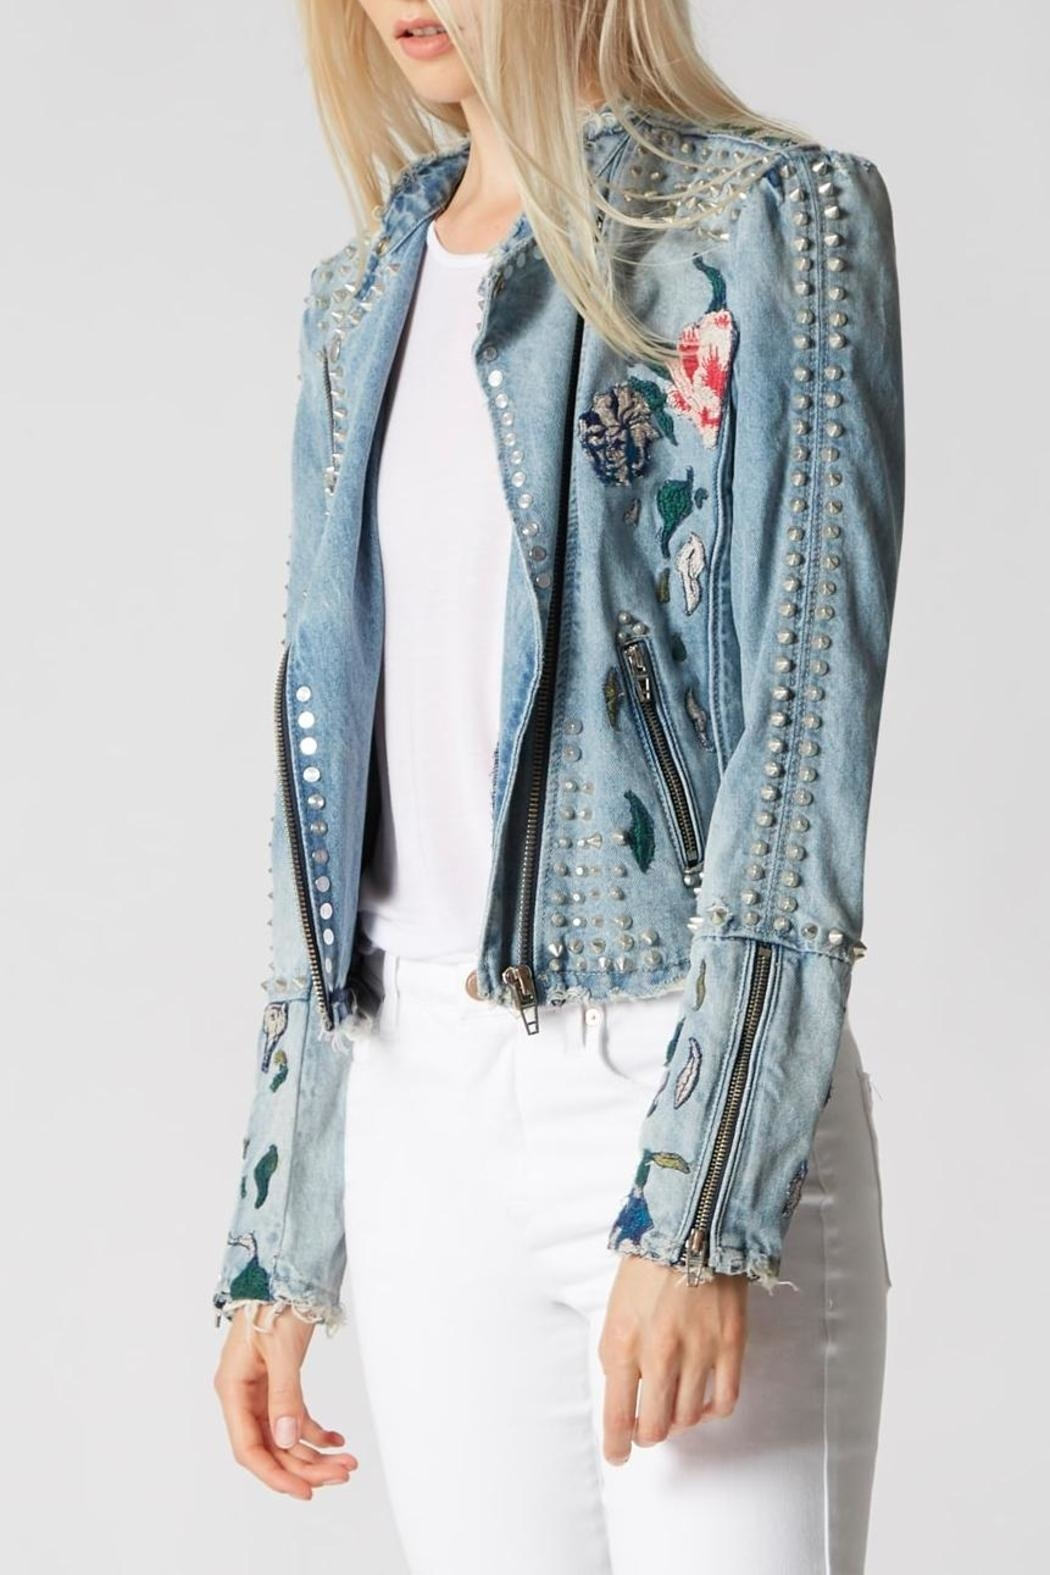 Blank NYC Denim Embroidered Jacket from Nashville by Native + Nomad ...